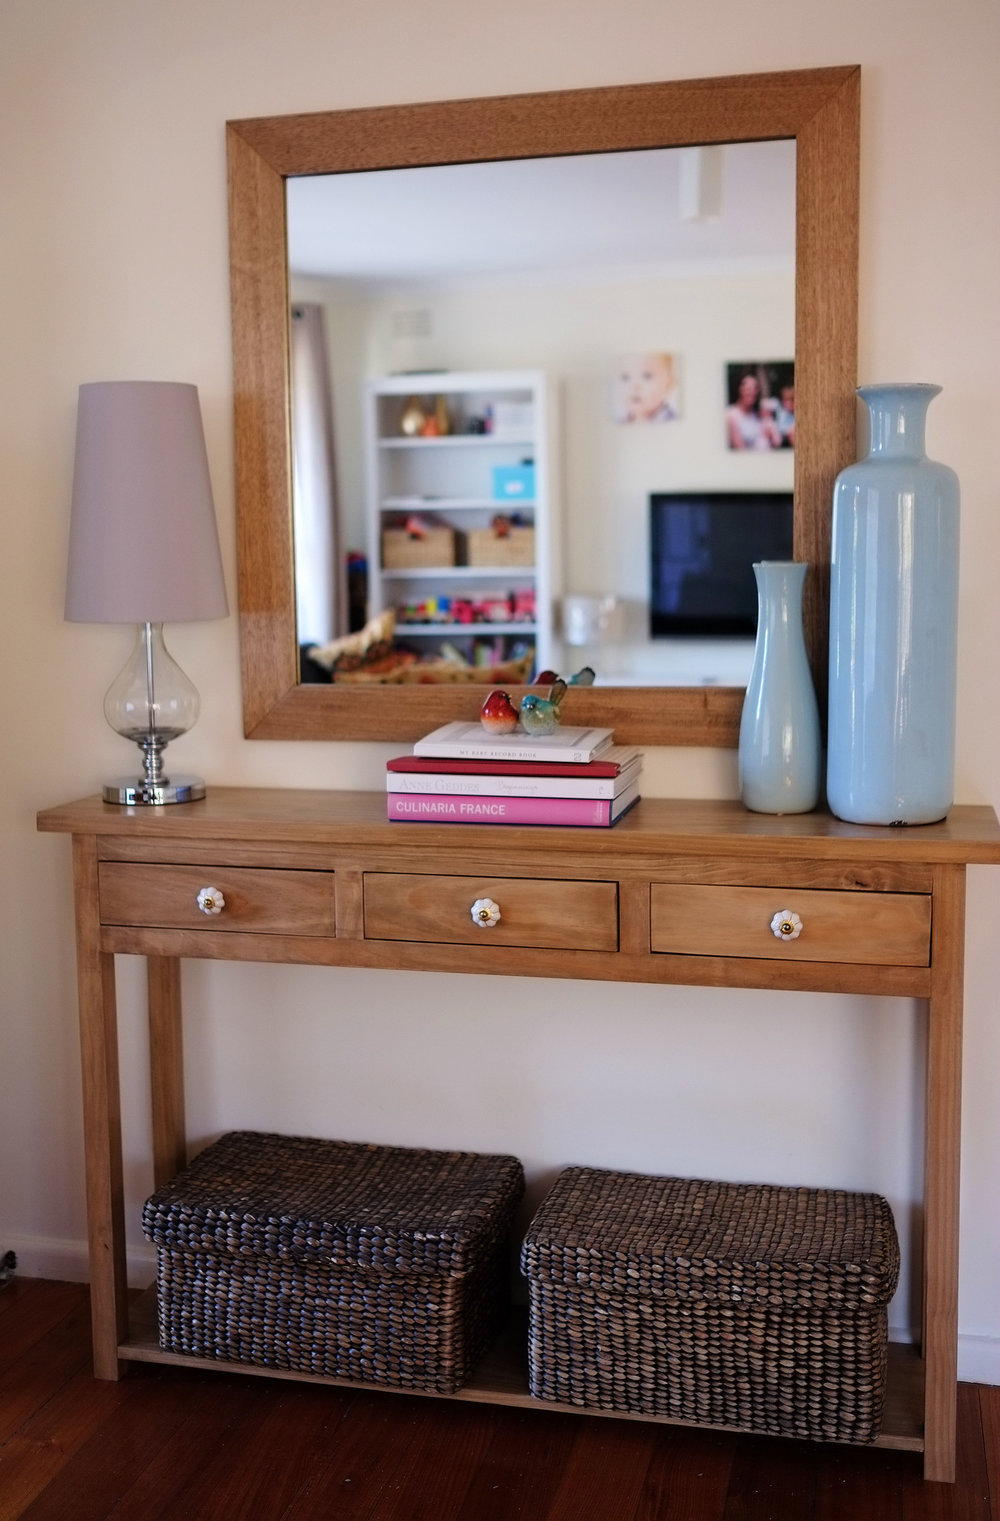 Hide lamp cords by attaching the cord to the leg of the table or console - The Organised You